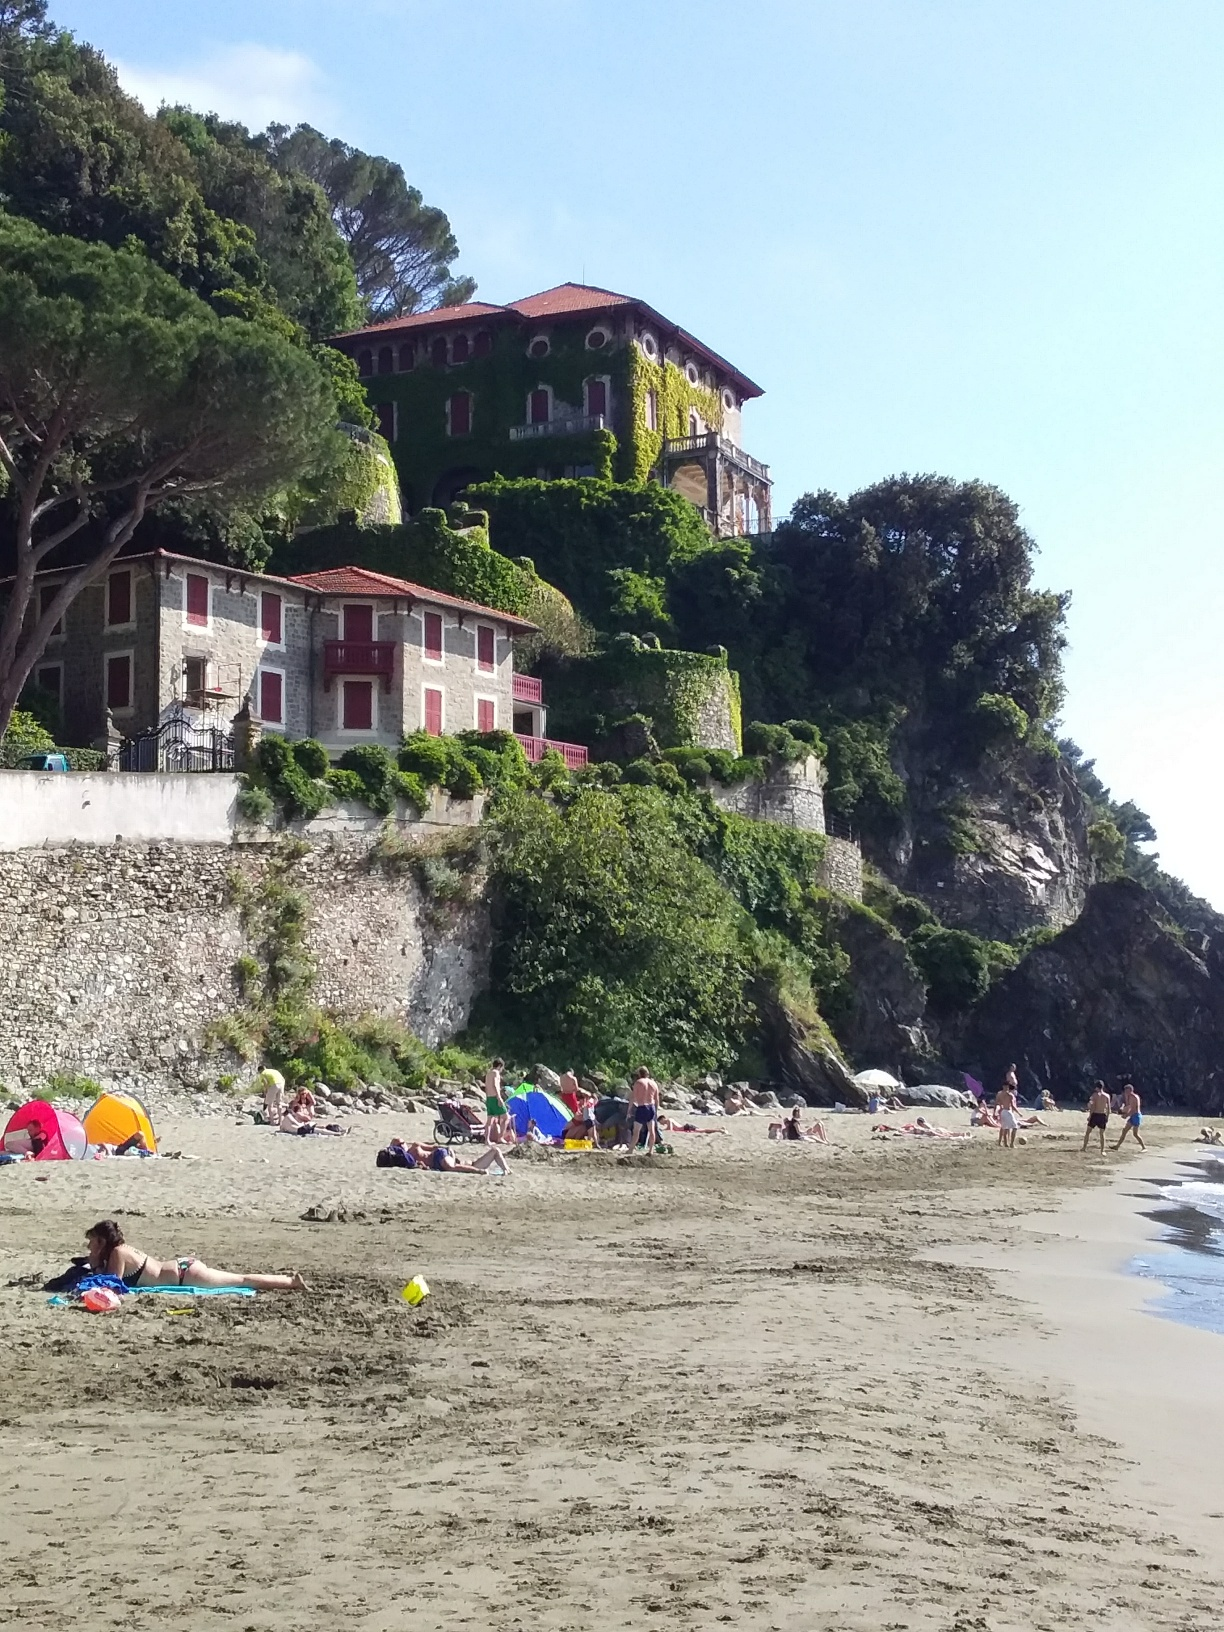 The public beach at Levanto - soft sand, calm waters, and stunning views in every direction